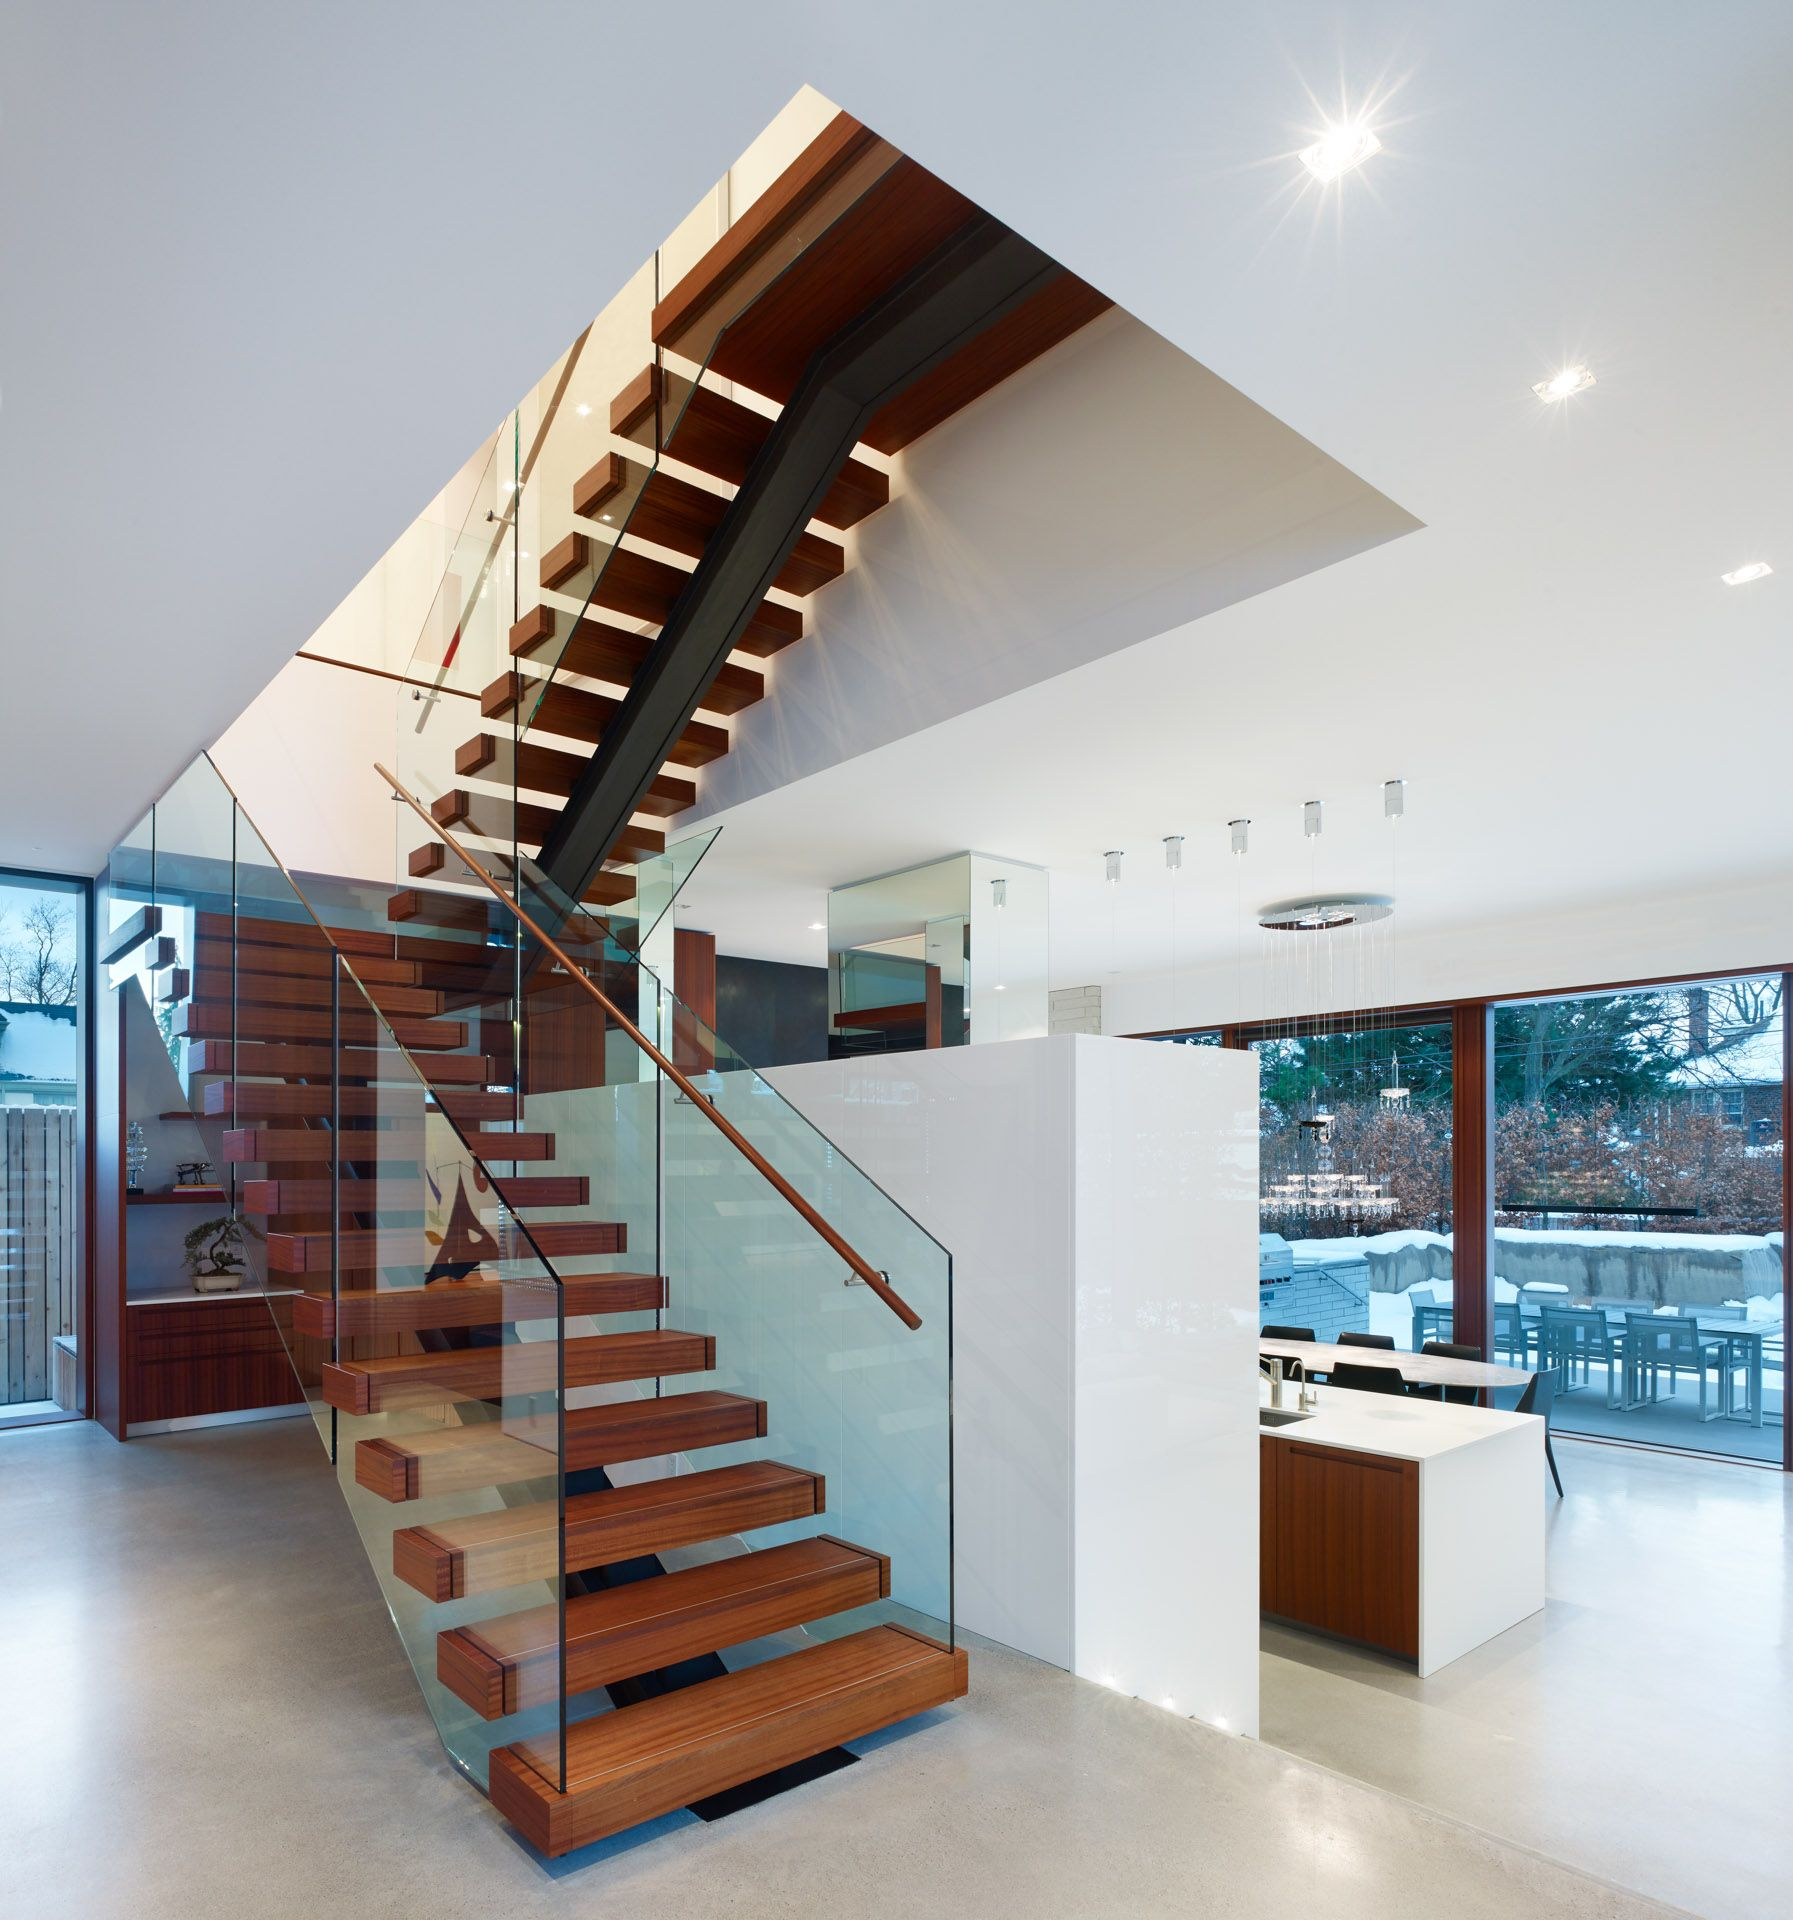 Best Residential Staircase Residential Architecture Home Design Plans Stairs Design 400 x 300